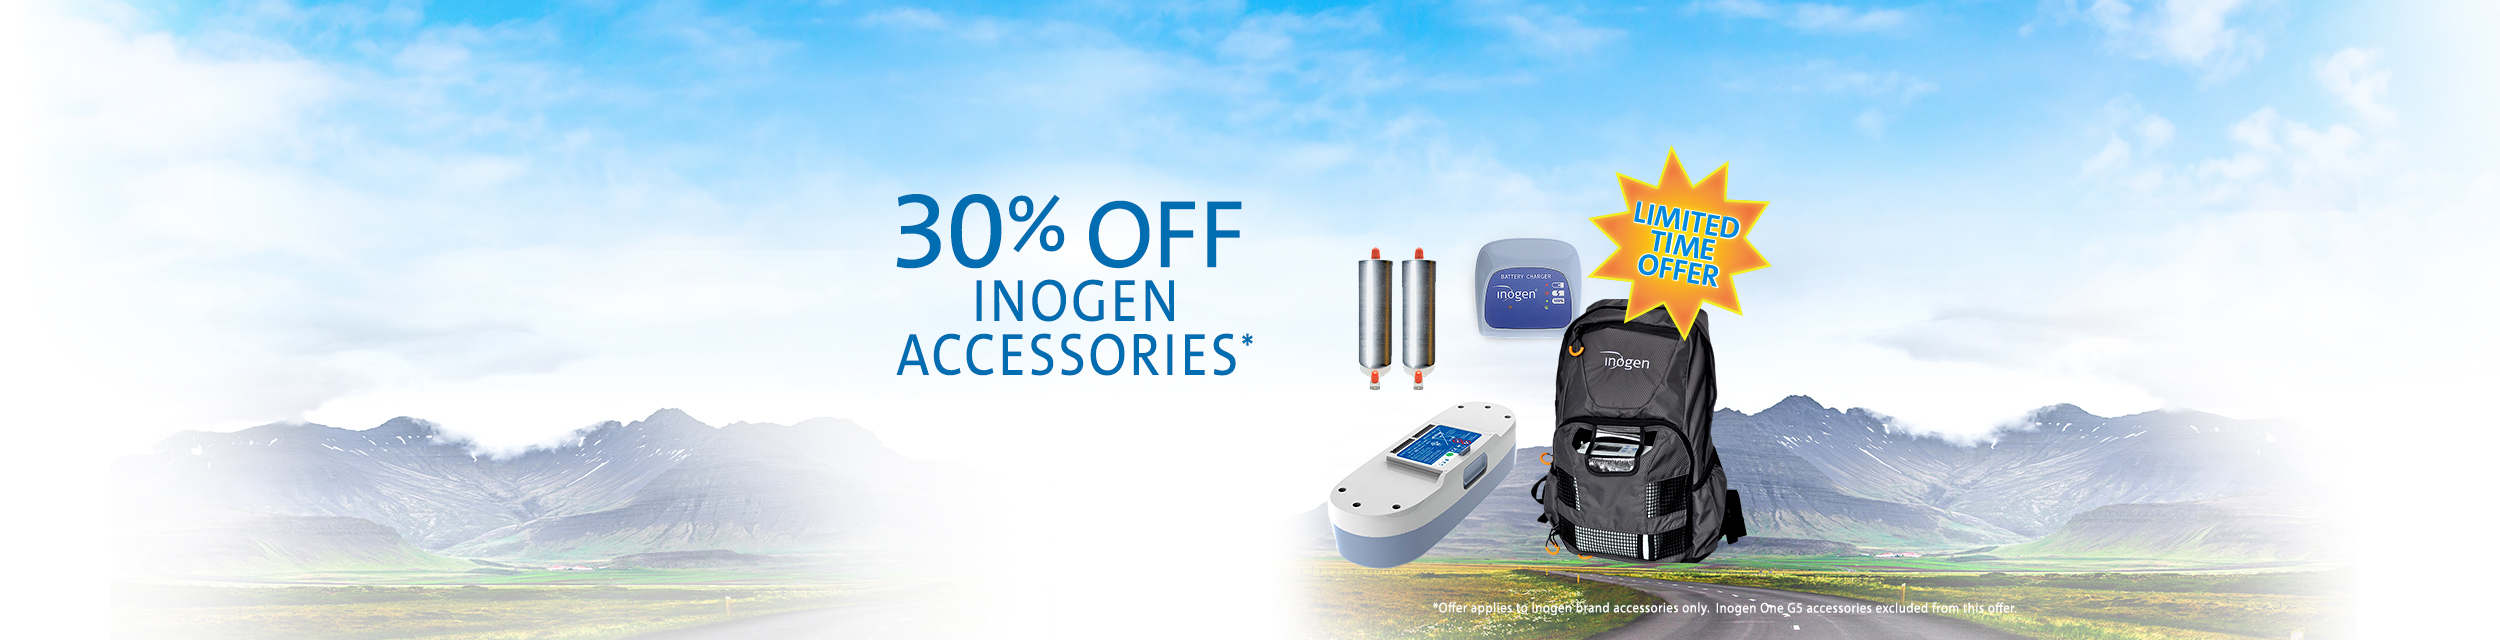 30% off Inogen accessories. Offer applies to Inogen brand accessories only. Inogen One G5 accessories excluded from this offer.